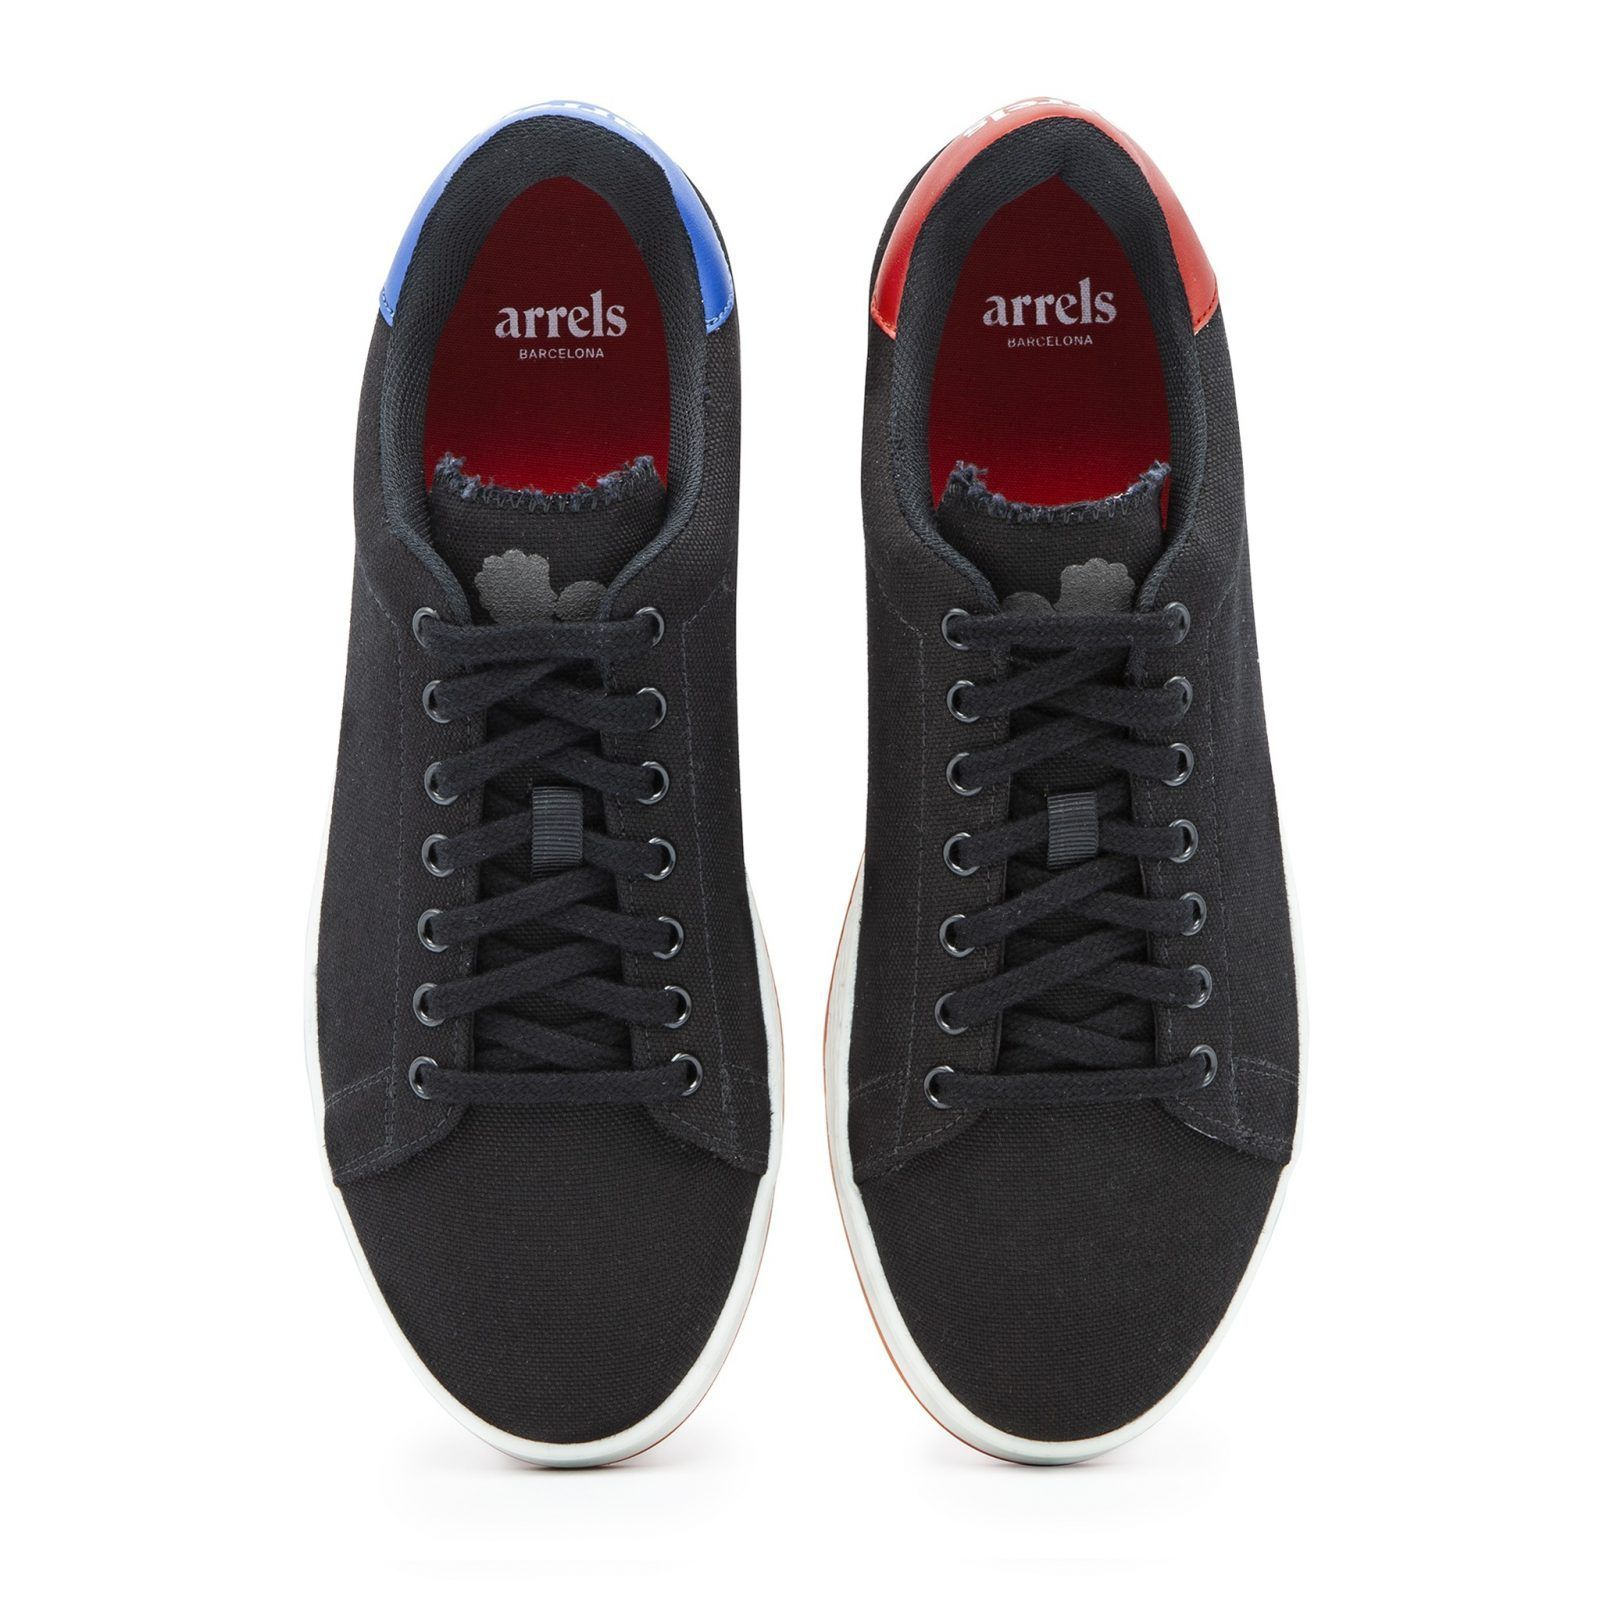 Cotton-Canvas Sneakers with Contrast Sole-623